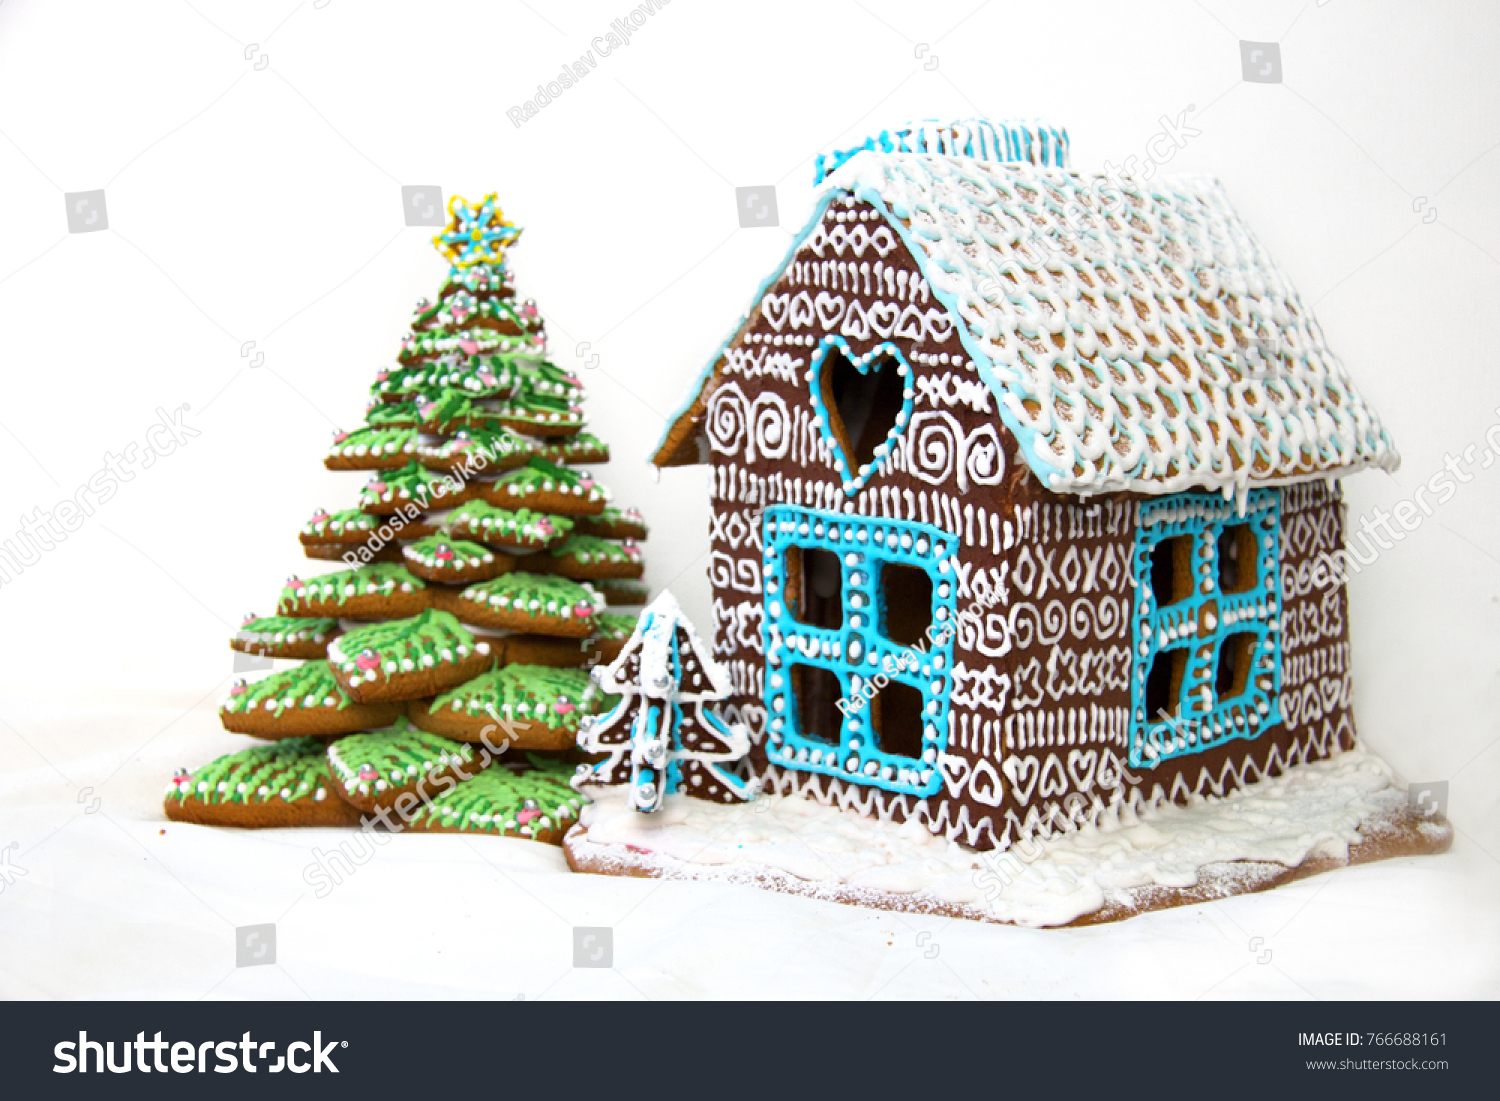 gingerbread christmas cake house and tree decorated with colourful sugar